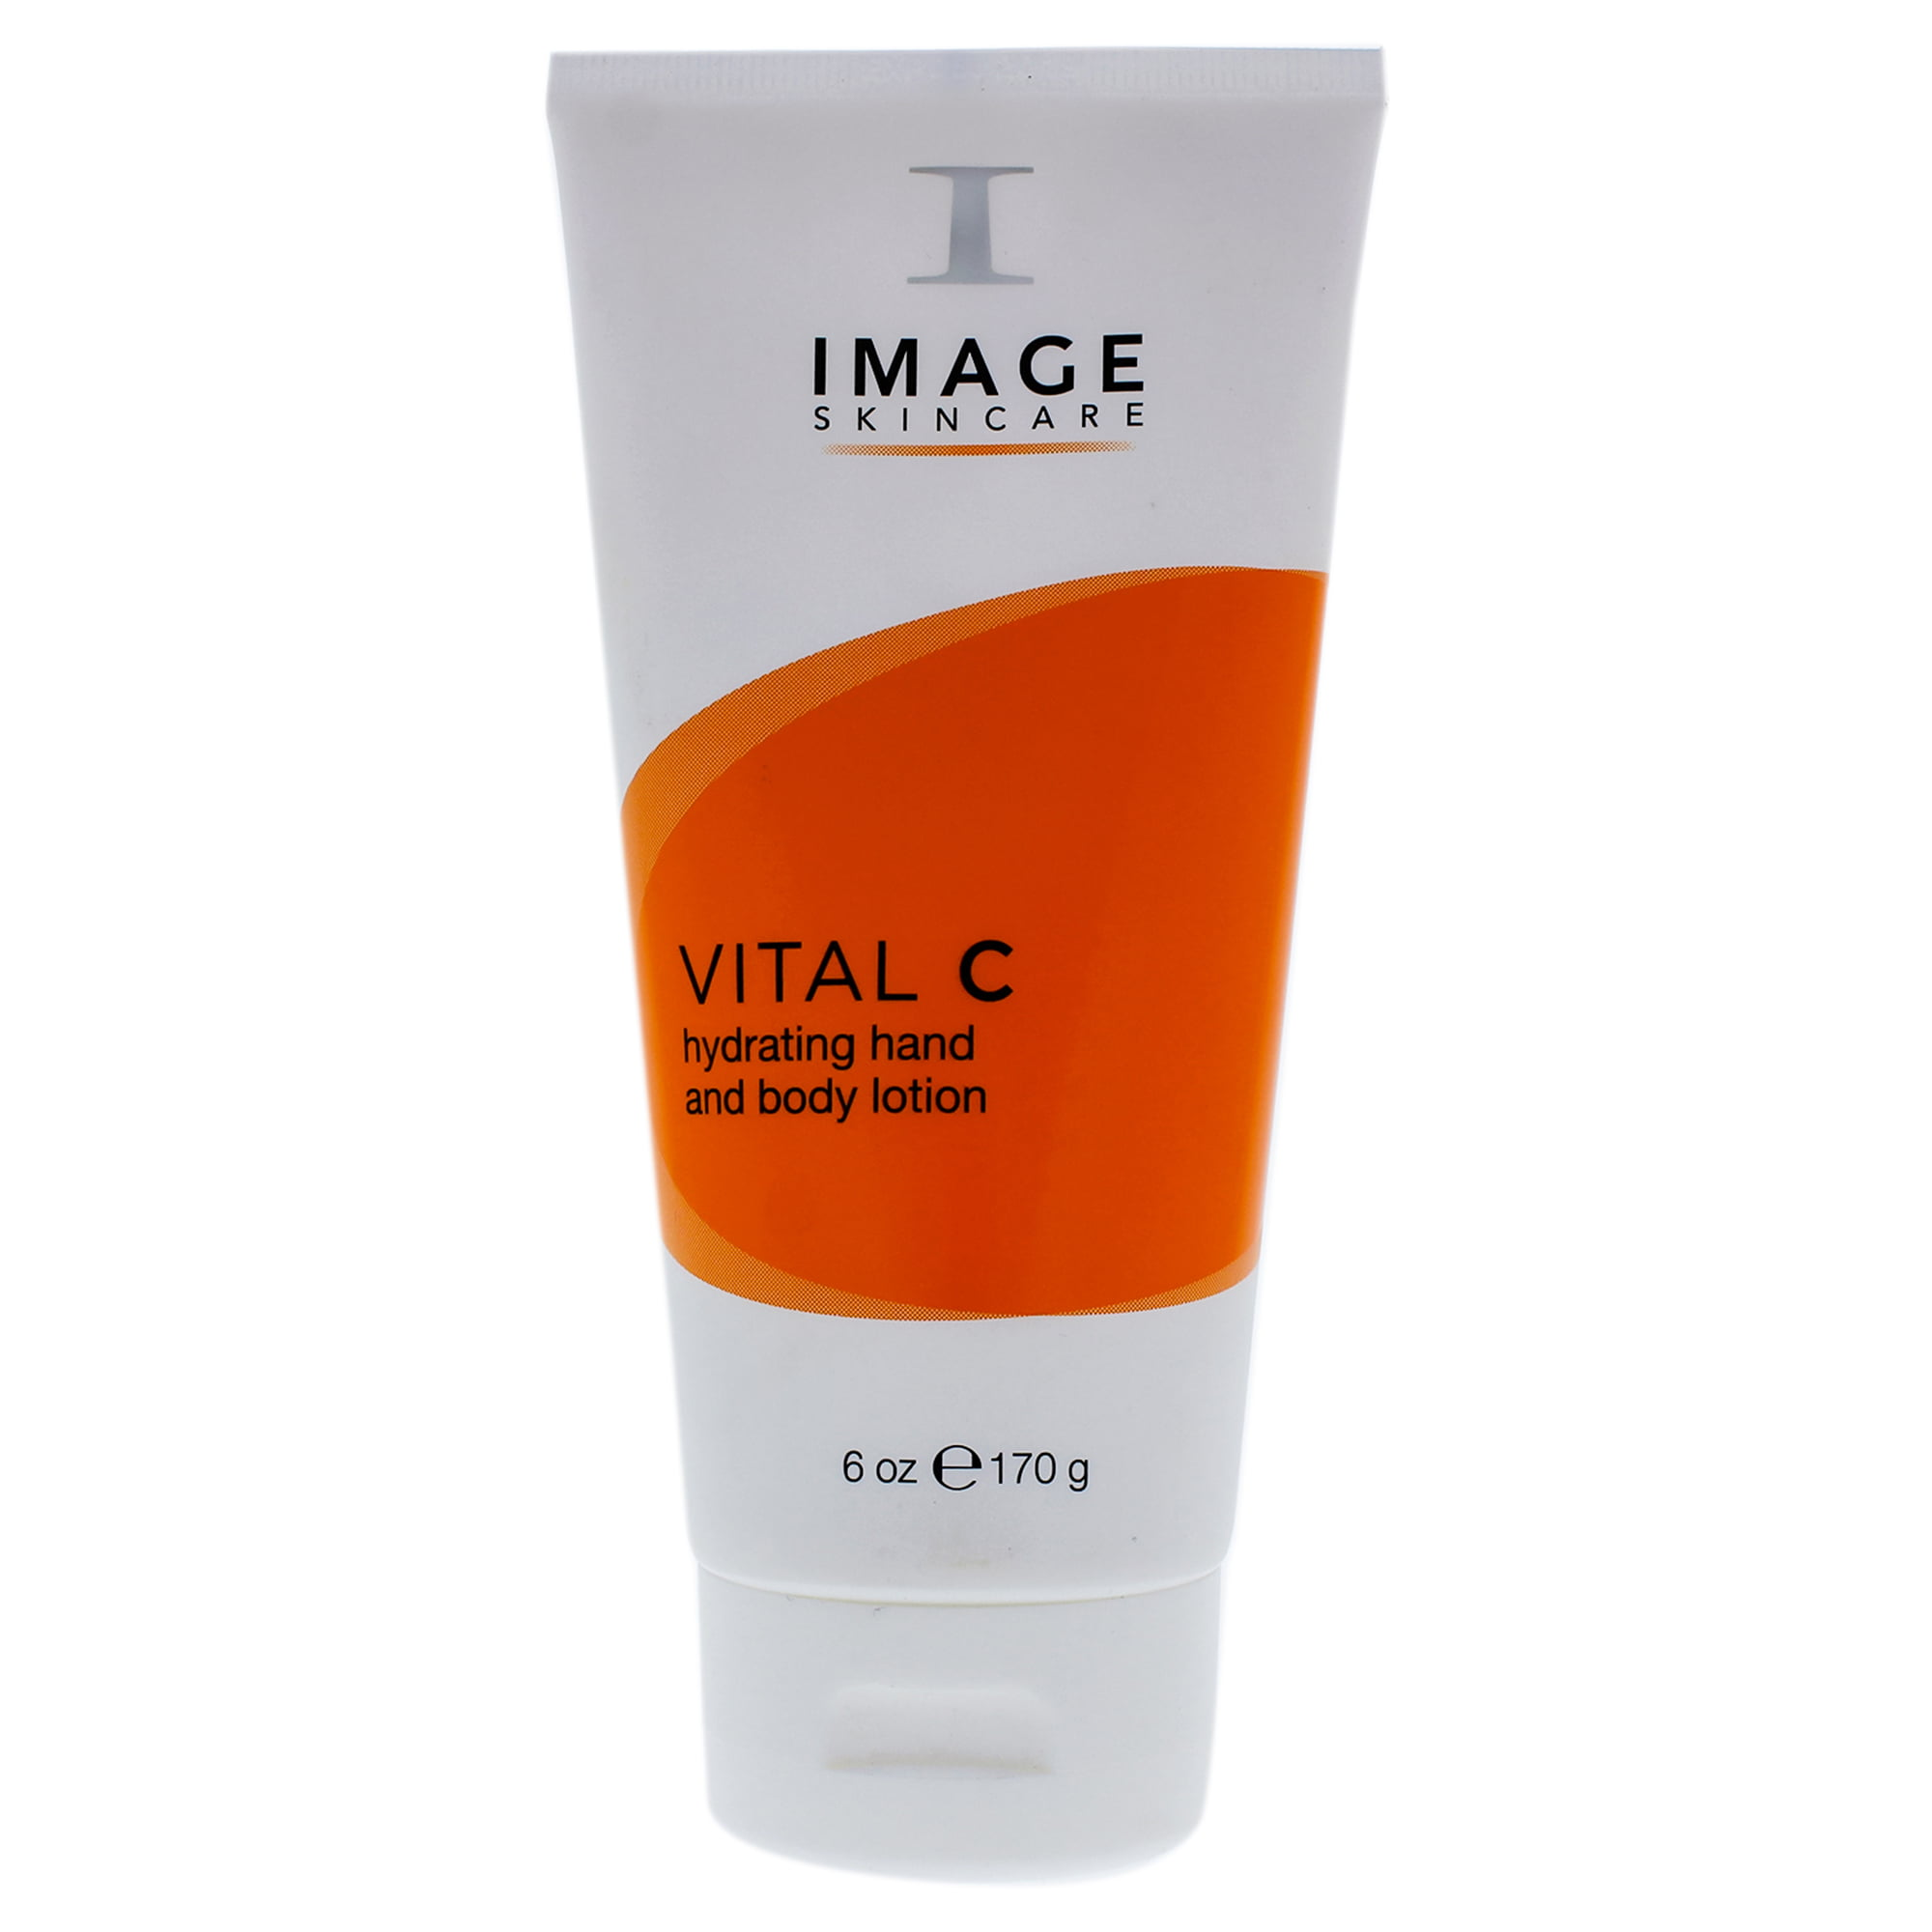 Hydration Skin Care: Image Skin Care Vital C Hydrating Hand And Body Lotion, 6